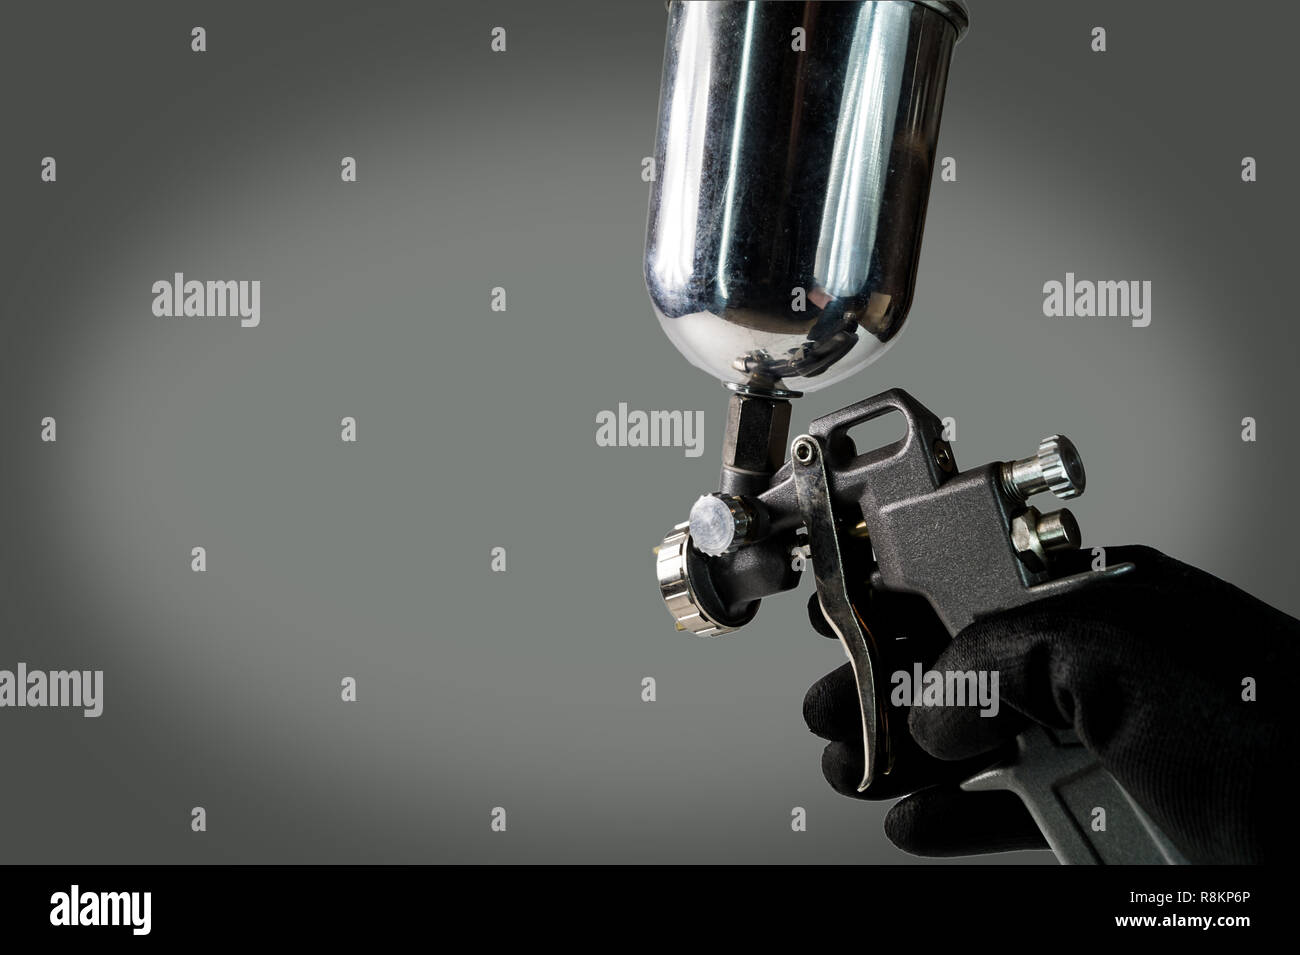 a painter working with a airbrush gun - isolated - Stock Image